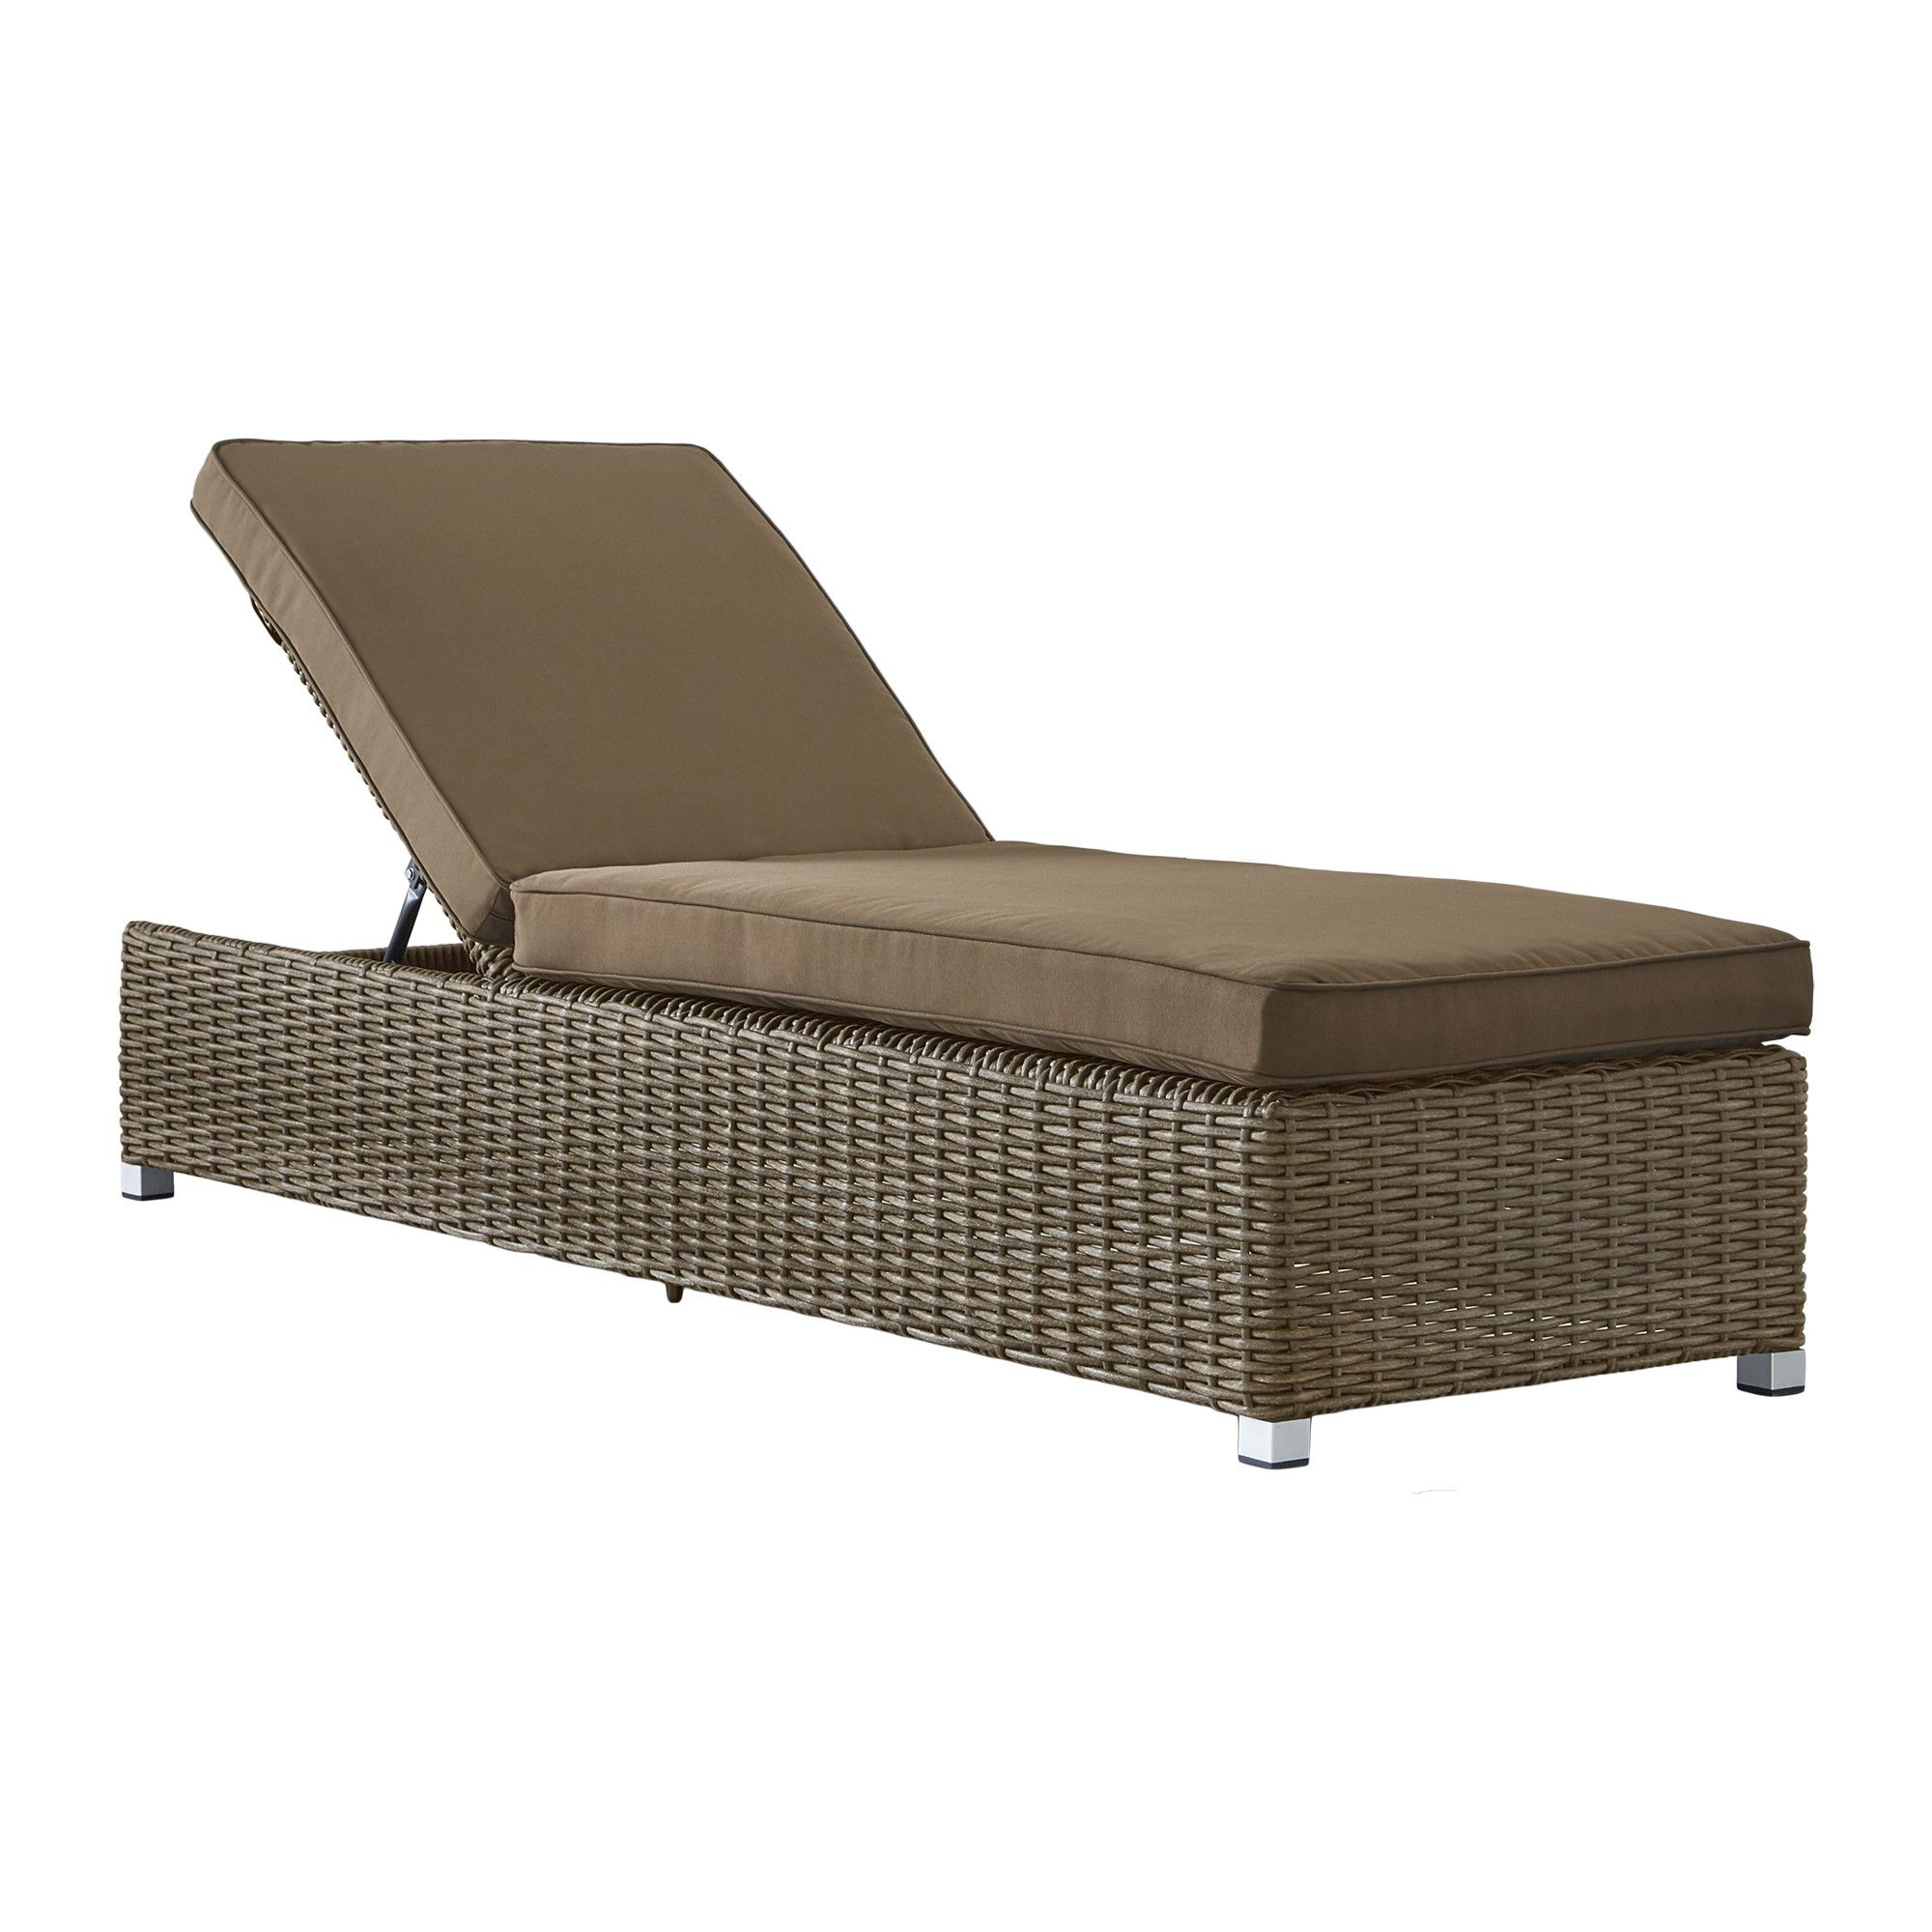 Famous Shannon Patio Lounge Chair With Cushion (View 10 of 25)